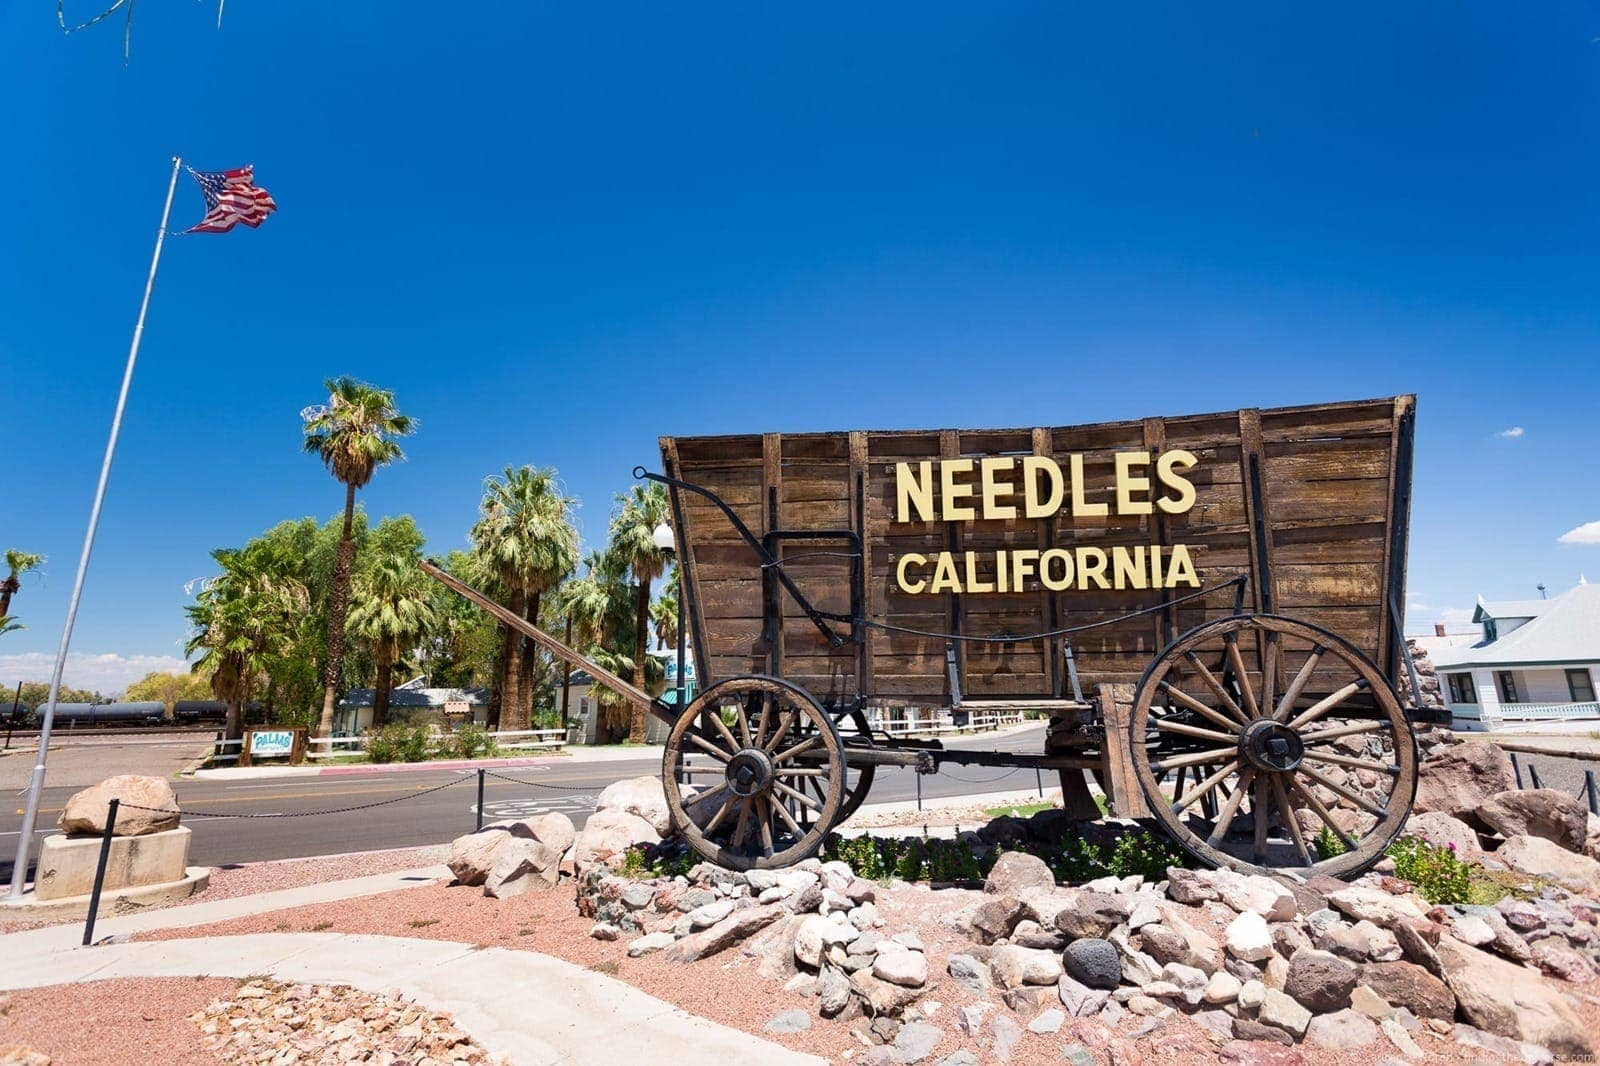 Needles wagon Route 66 California